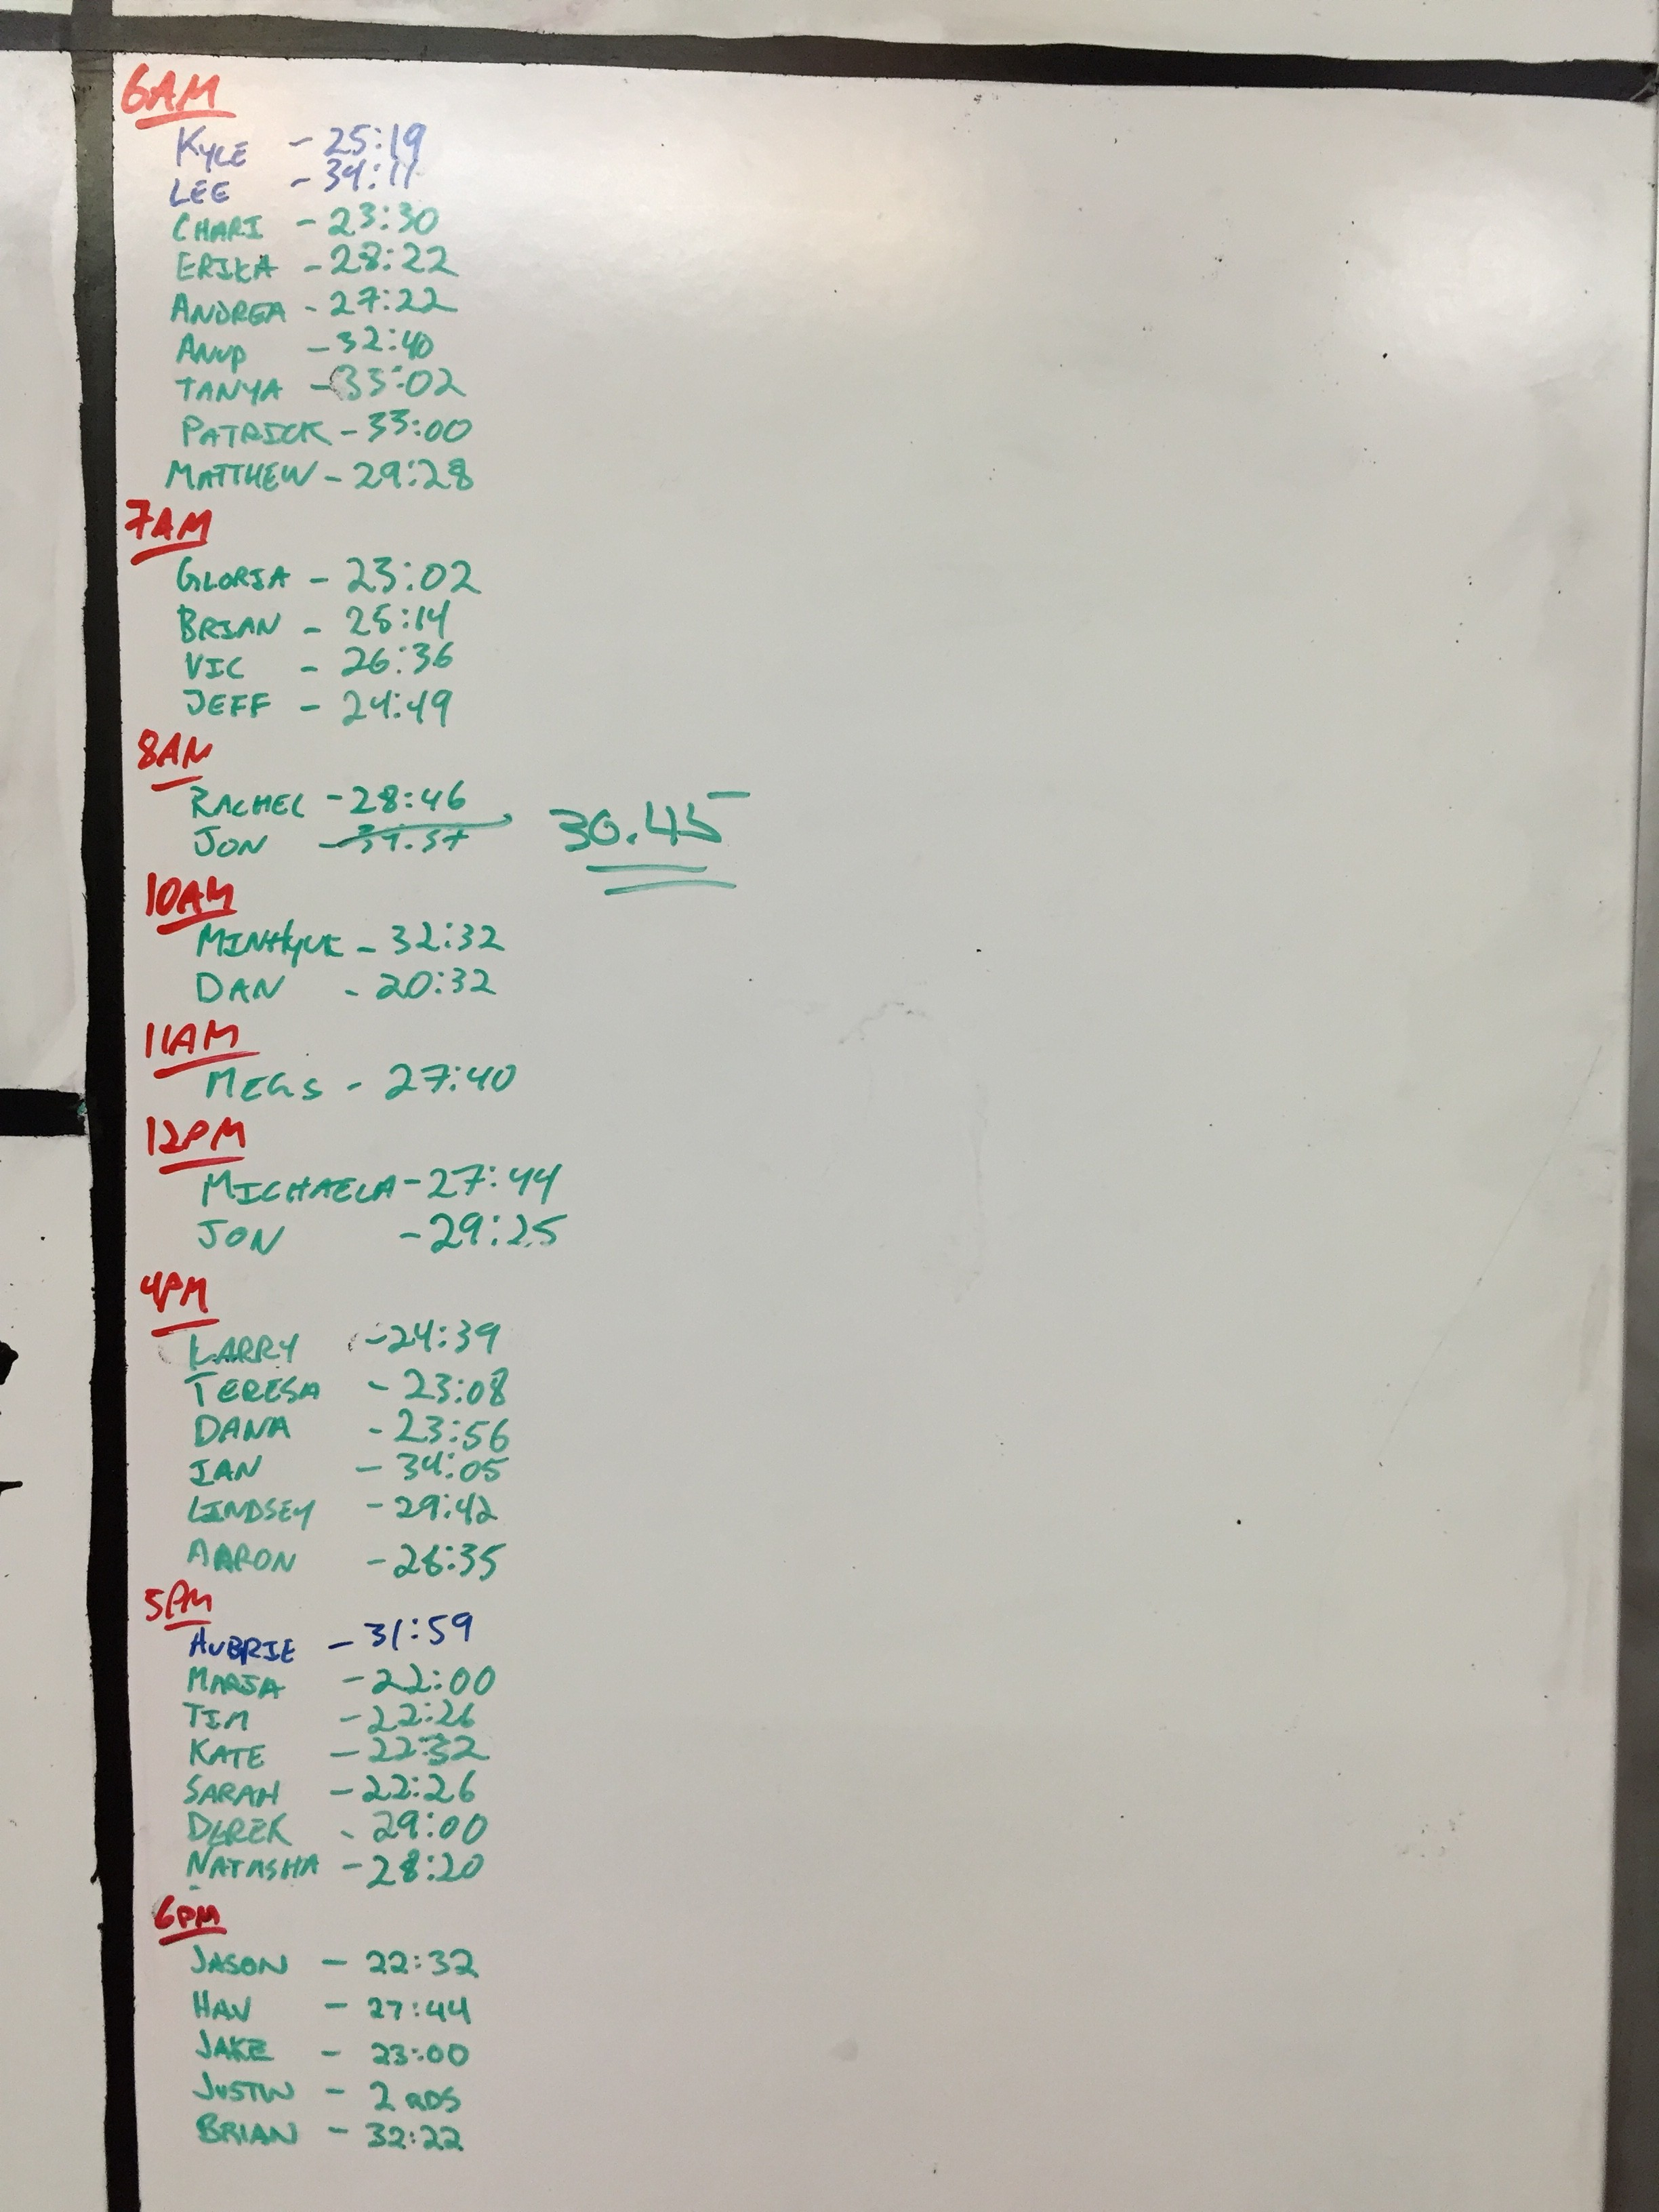 Sep 24 WOD Results